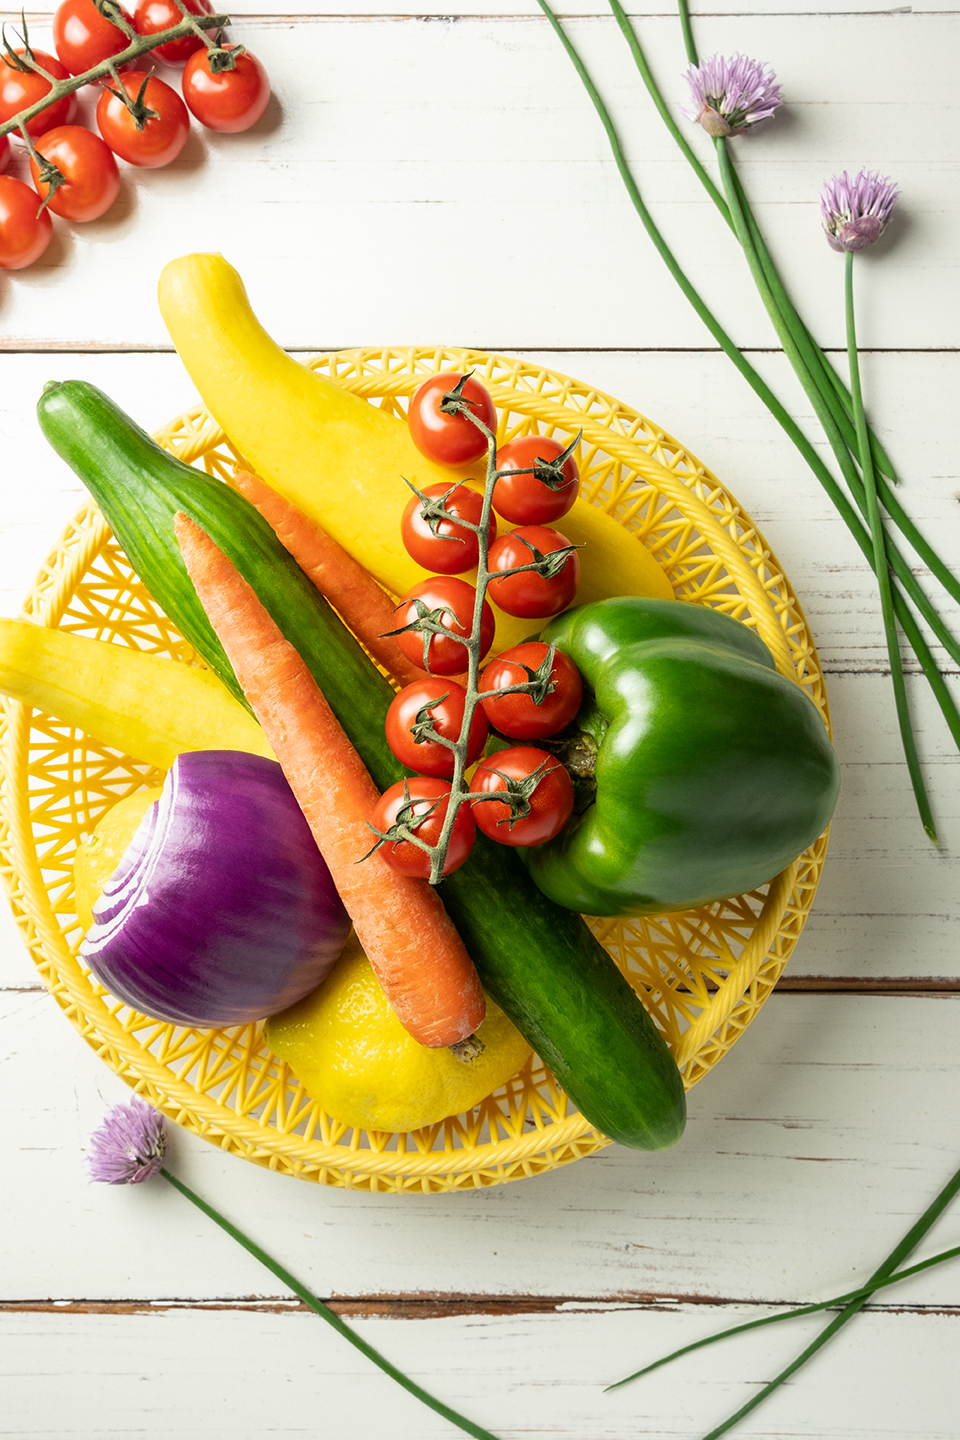 Chives, Green Peppers, Tomatoes, Red Onions, Carrots, Lemons, Cucumber and Summer Squash in a yellow plastic basket.